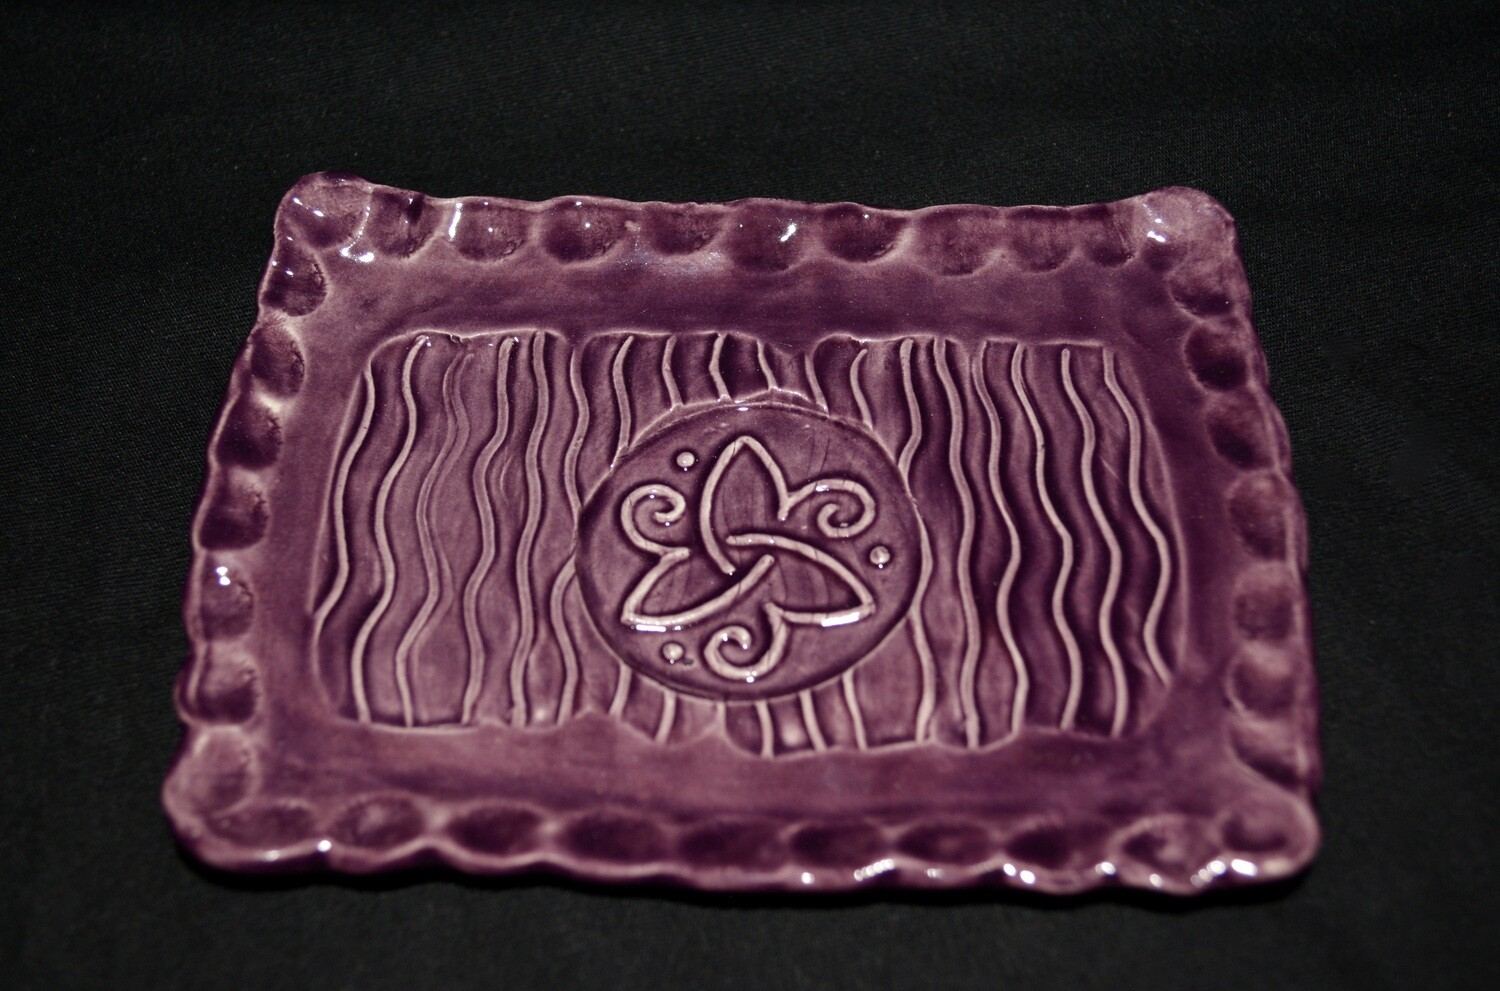 Purple Rectangle Soap Dish with Celtic Triangle with Spirals Artwork